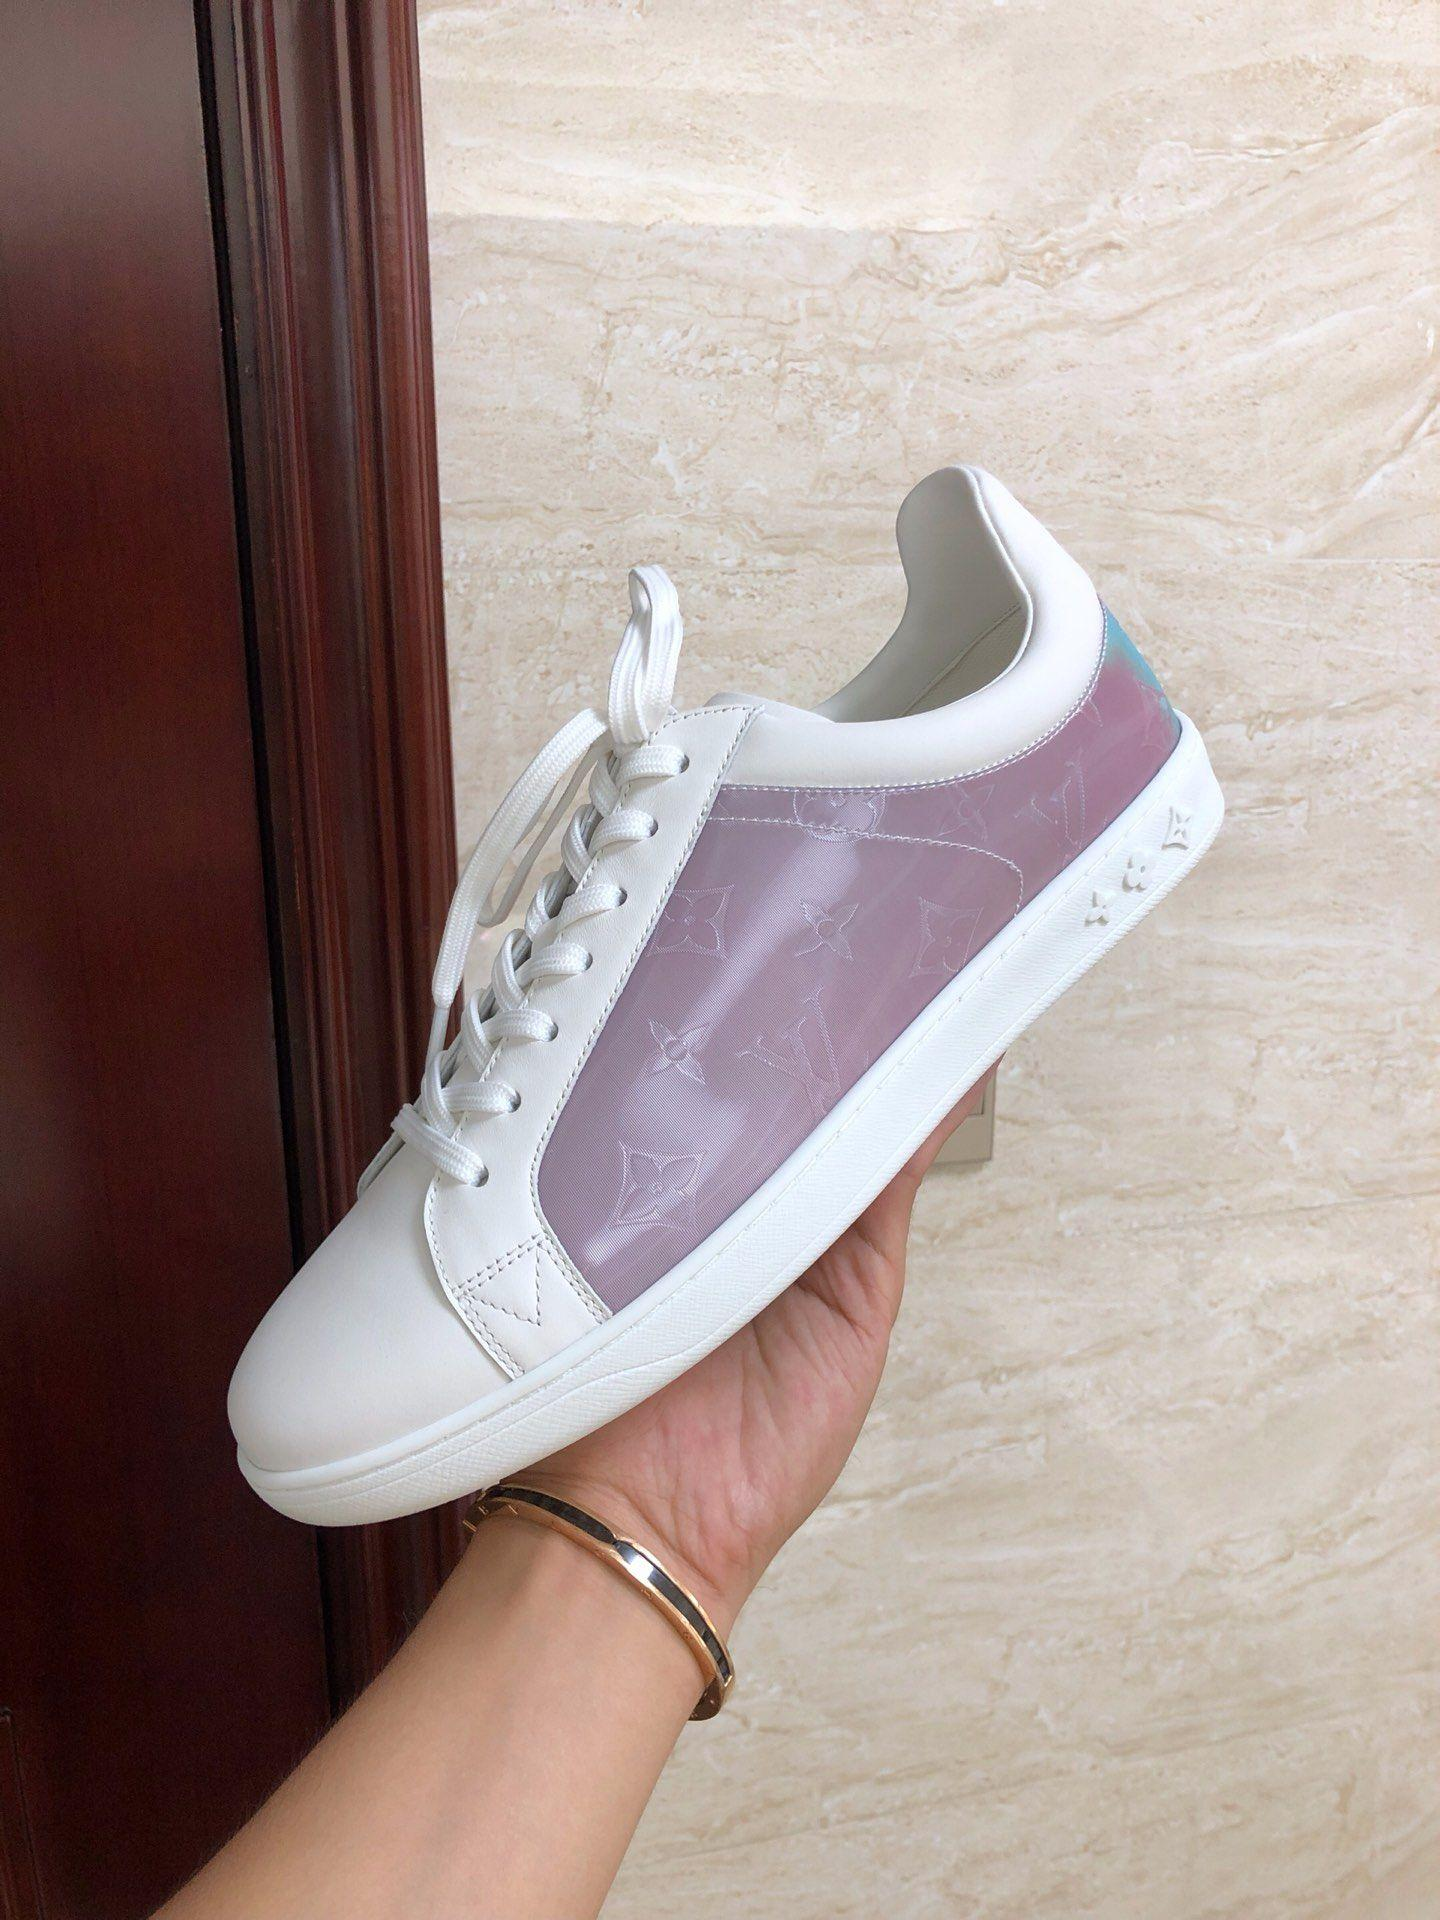 louis vuitton sneaker luxembourg Rose lv sneaker newest lv shoes 1A5HBA   13